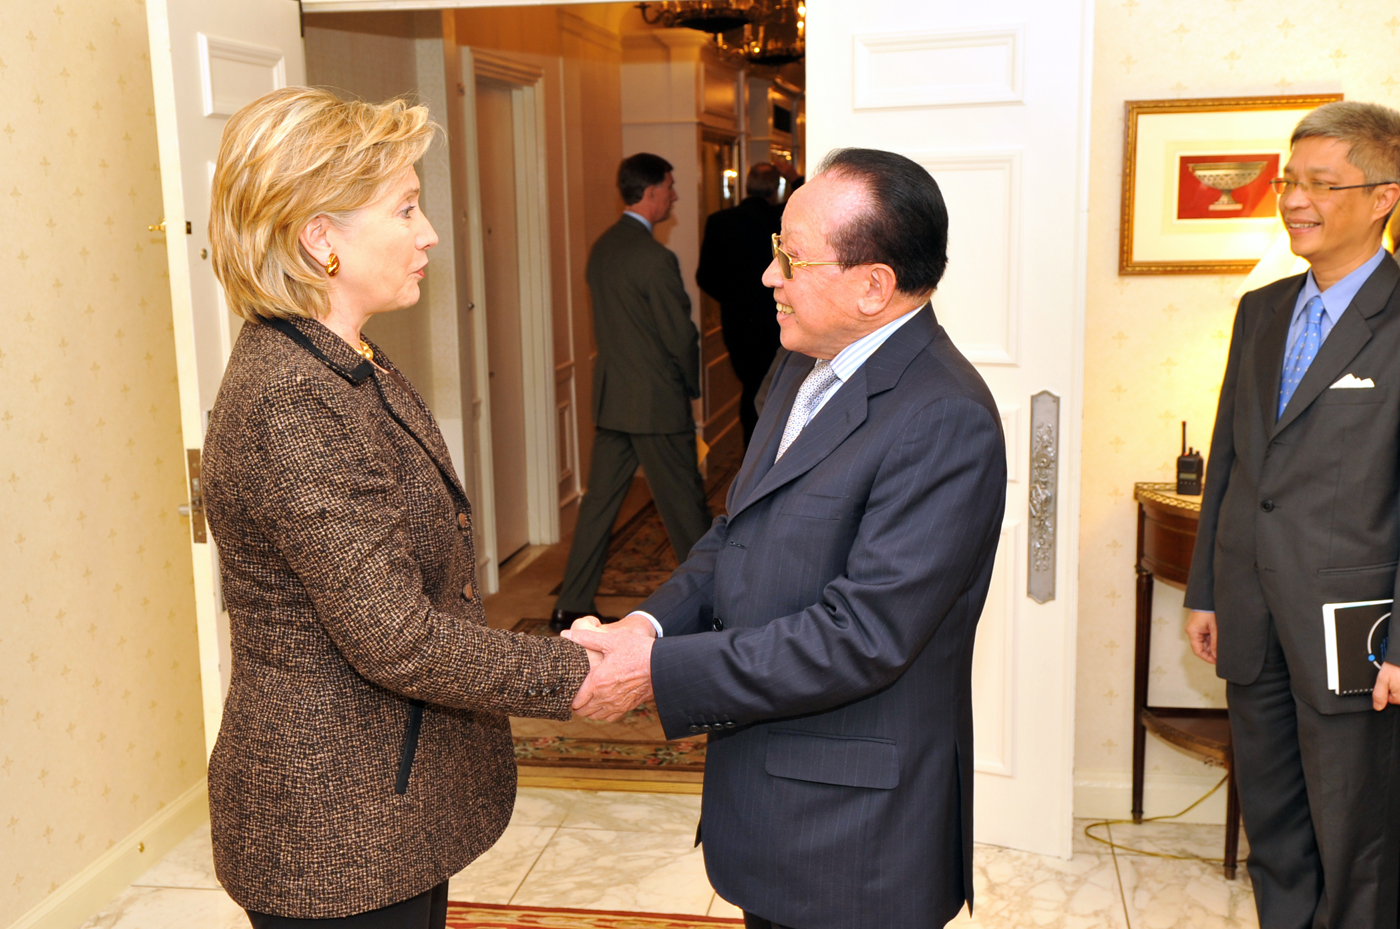 U.S. Secretary of State Hillary Clinton meets with Foreign Minister Hor Namhong in New York City on September 28, 2009